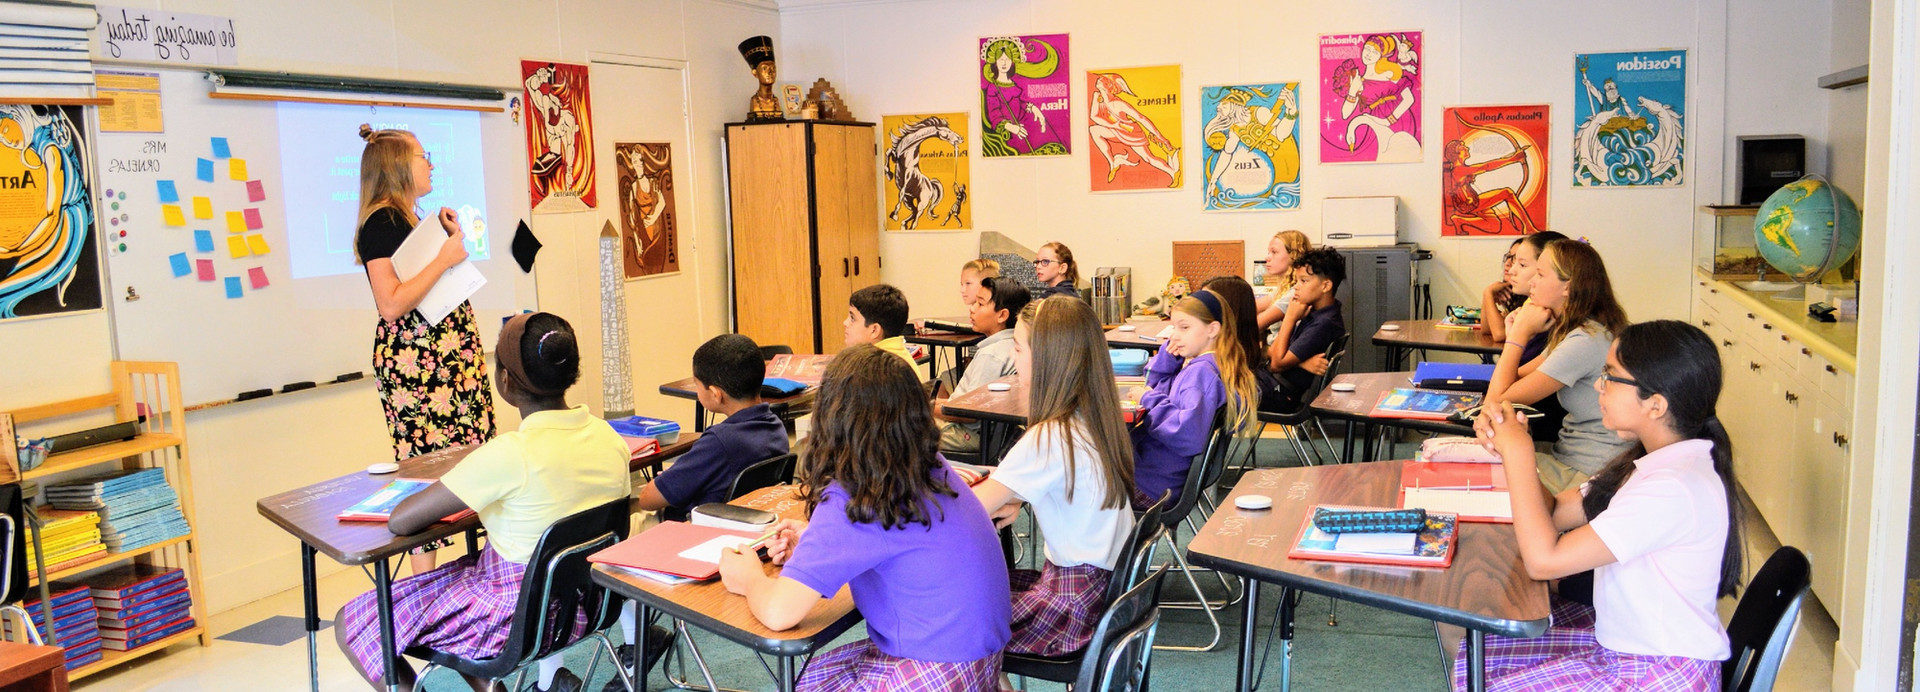 """Component One: Led by qualified faculty, students learn the basics of business by using Junior Achievements award winning """"It's My Business"""" as prerequisite classroom work."""